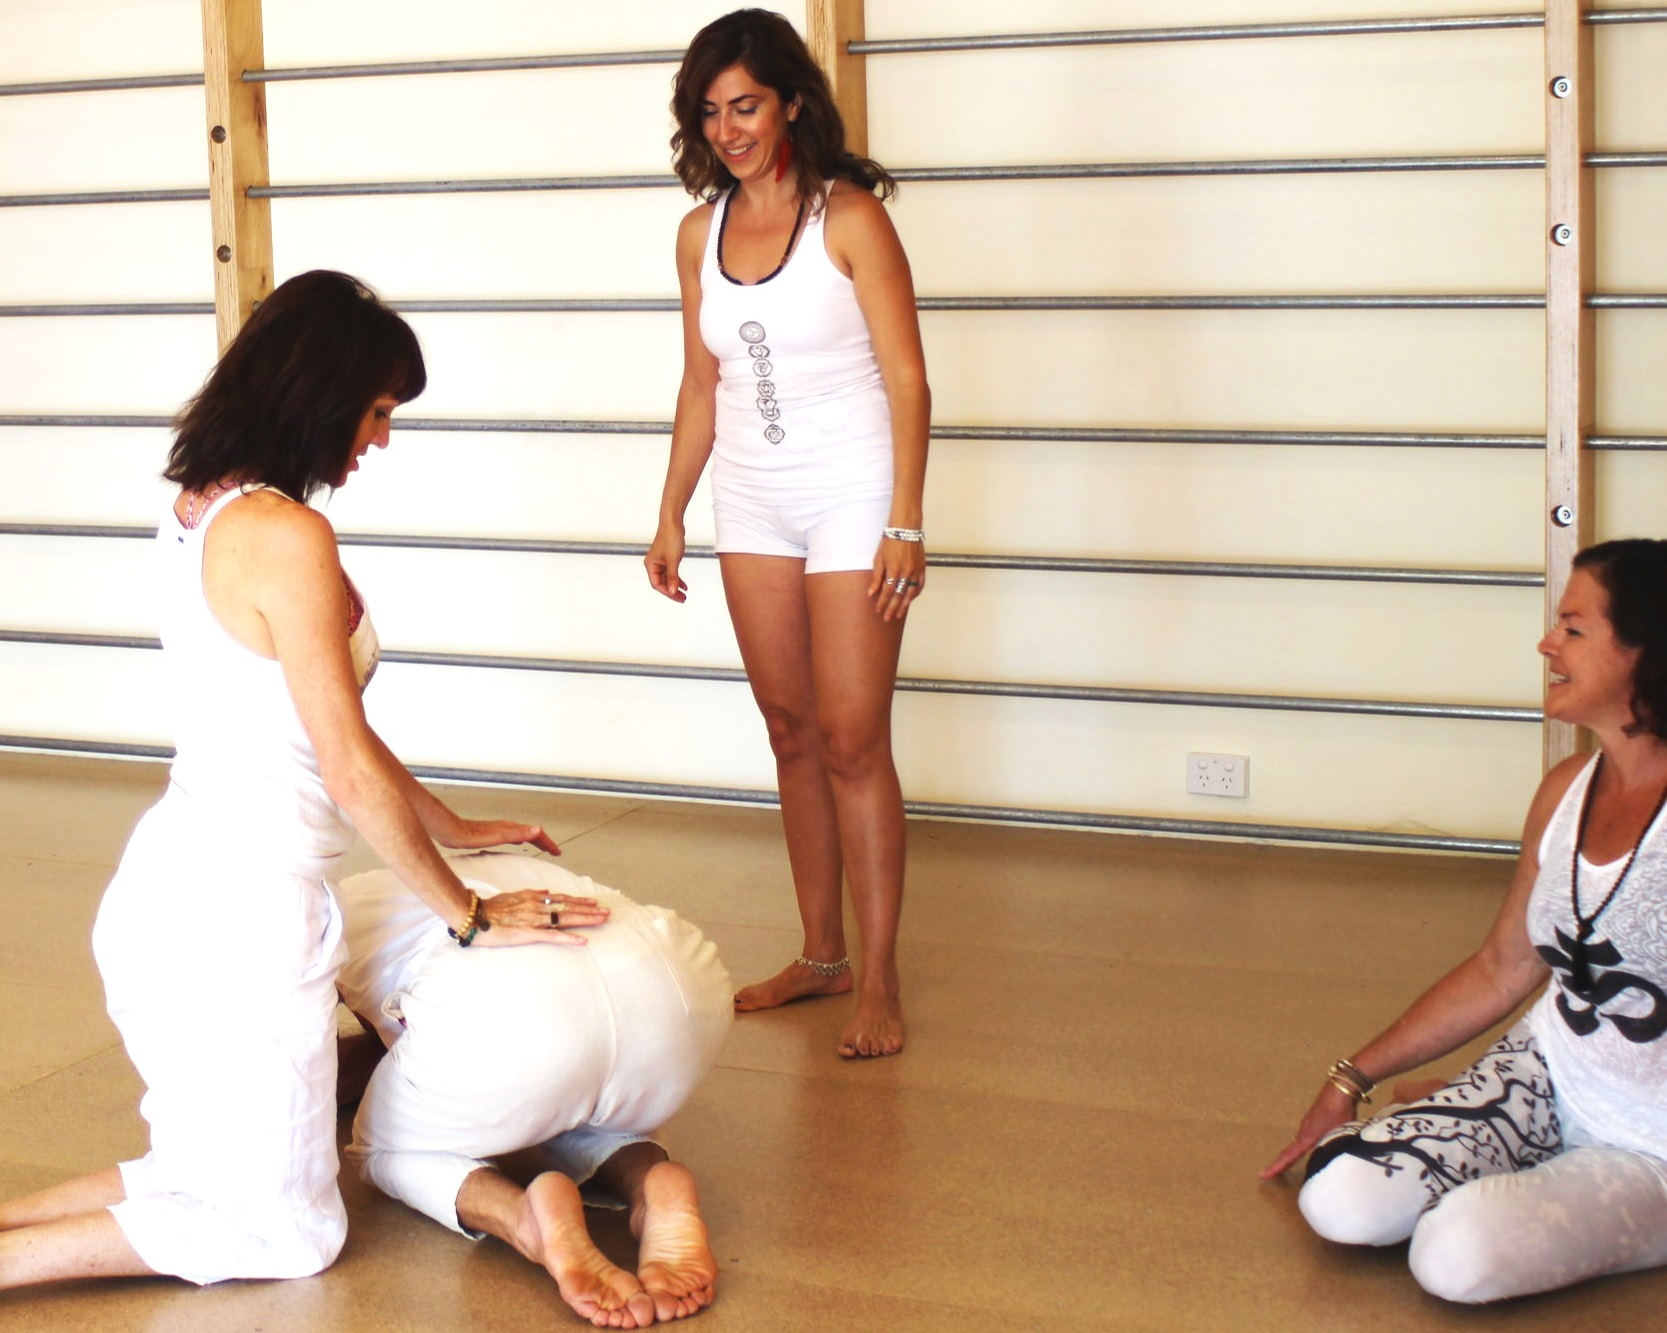 1 and 3 Month Mentorship Programs for Yoga Teachers - We provide new teachers with short and long term guidance to learn and practice new sequences, variations and pose adjustments in class, and tuition and support in bringing them to your own students.We encourage you to bring the problems and issues (which all new teachers face) to light and help find practical solutions.Find support and direction to develop your style and be confident in what you are teaching.Apply in writing or call us to discuss. We are here to assist and enhance as your teaching evolves.